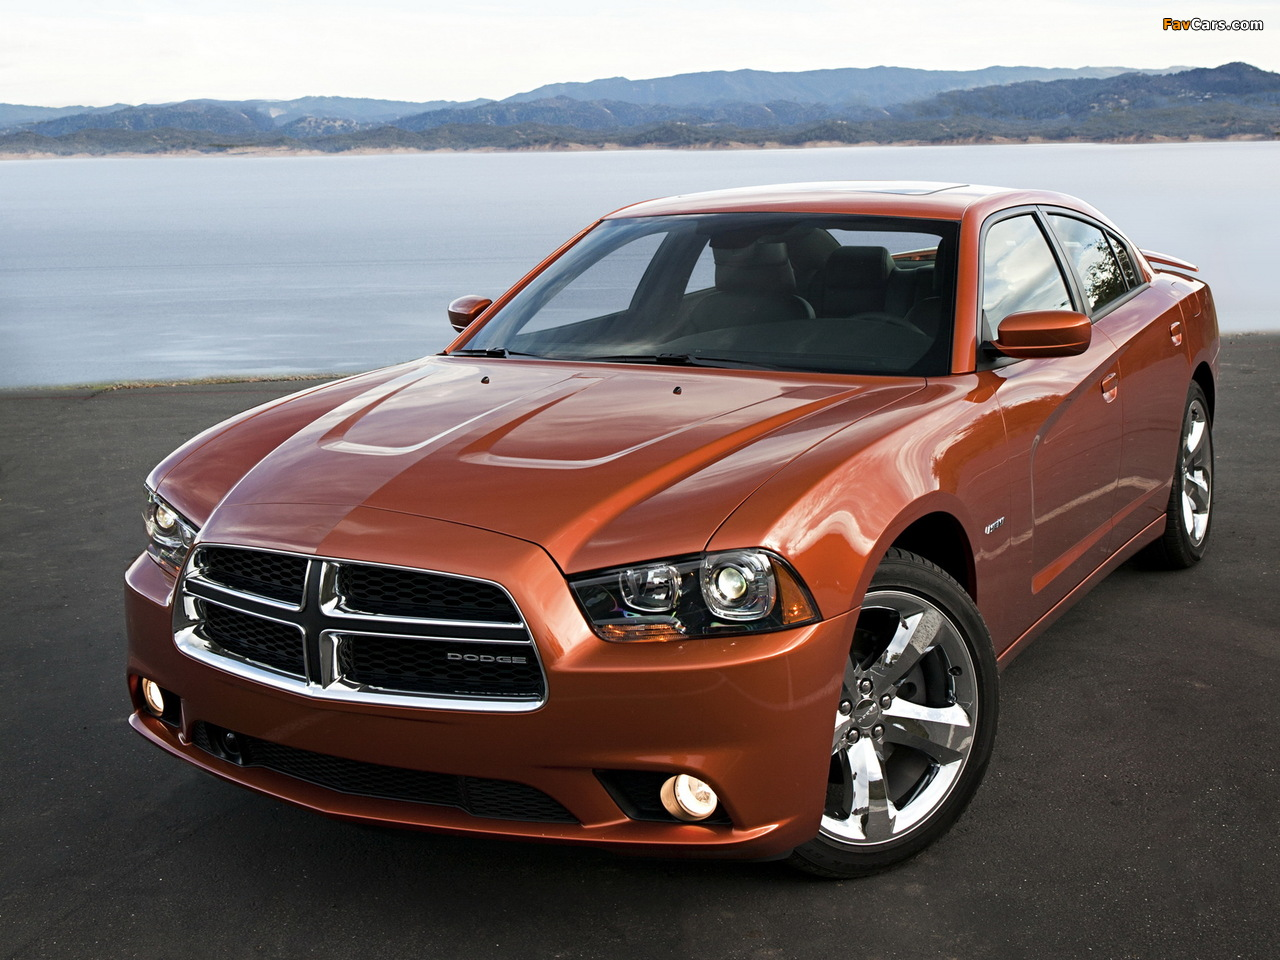 Dodge Charger R/T 2011 images (1280 x 960)